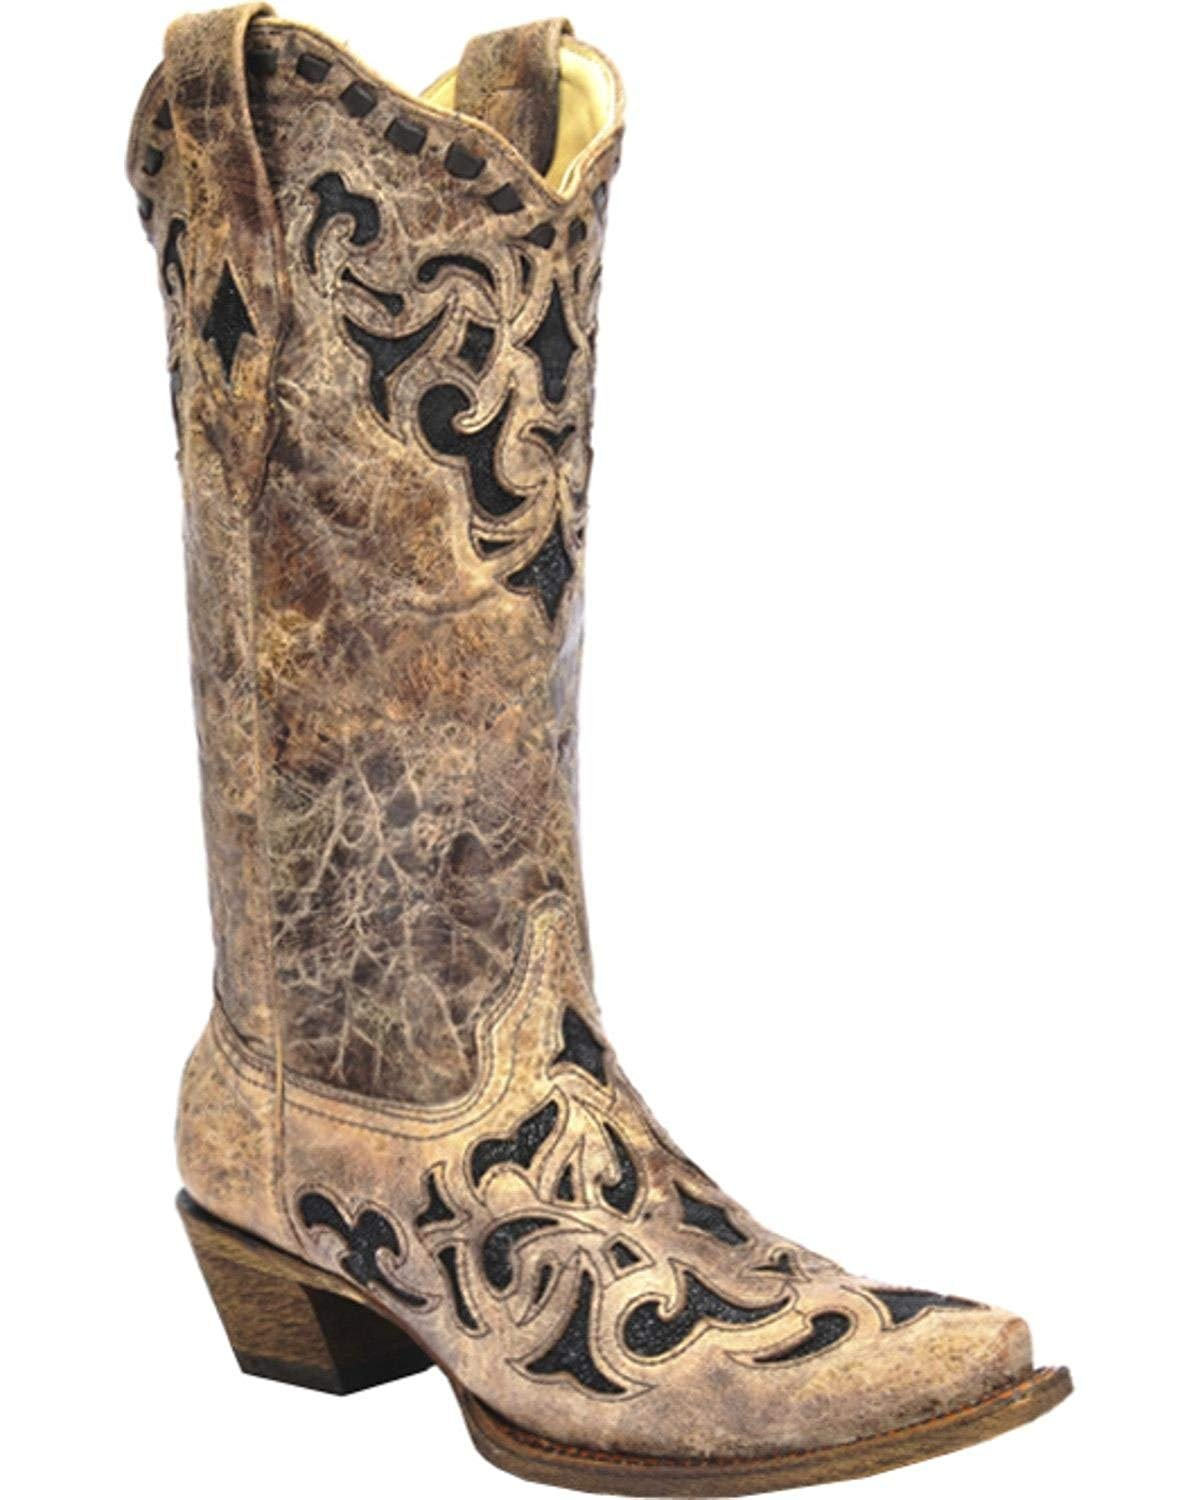 US CORRAL Womens Distressed Black Studded Embroidered Square Toe Cowgirl Boots R1365 8 B M